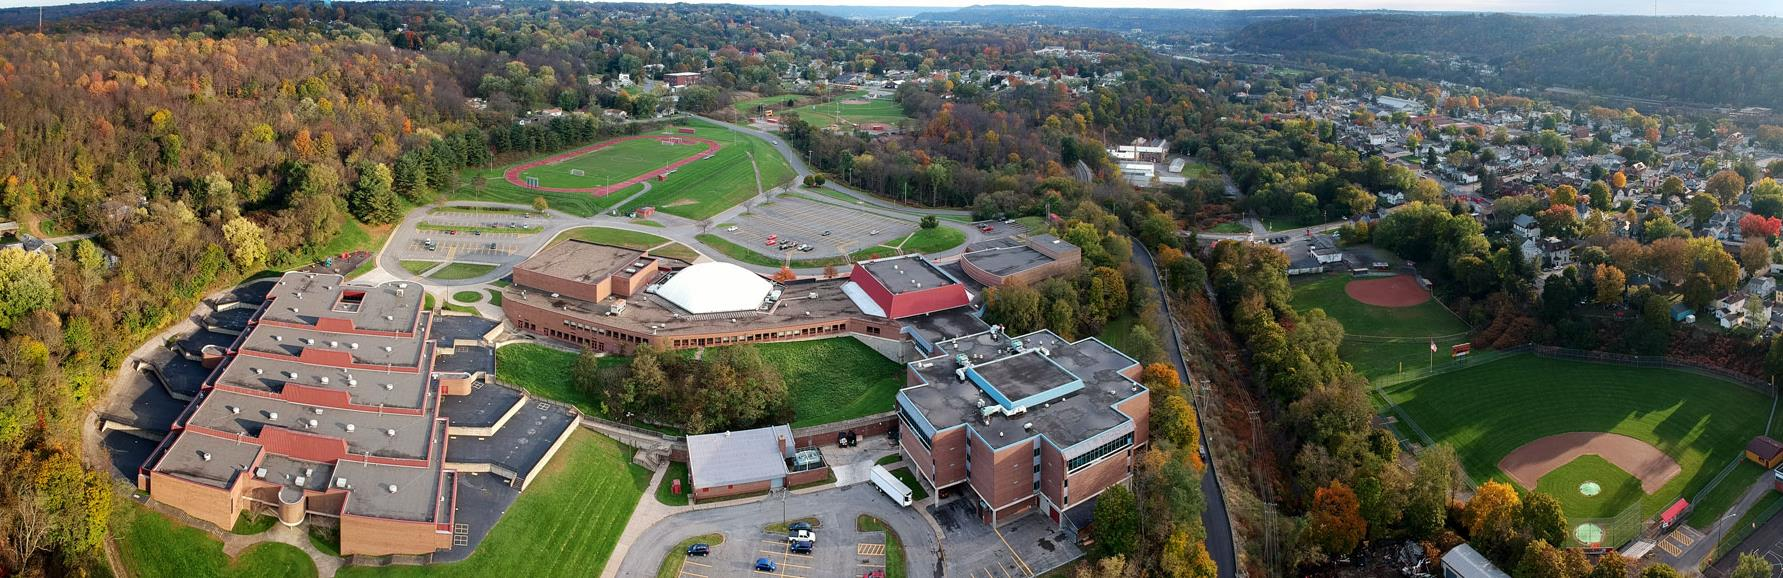 Drone of NB Campus